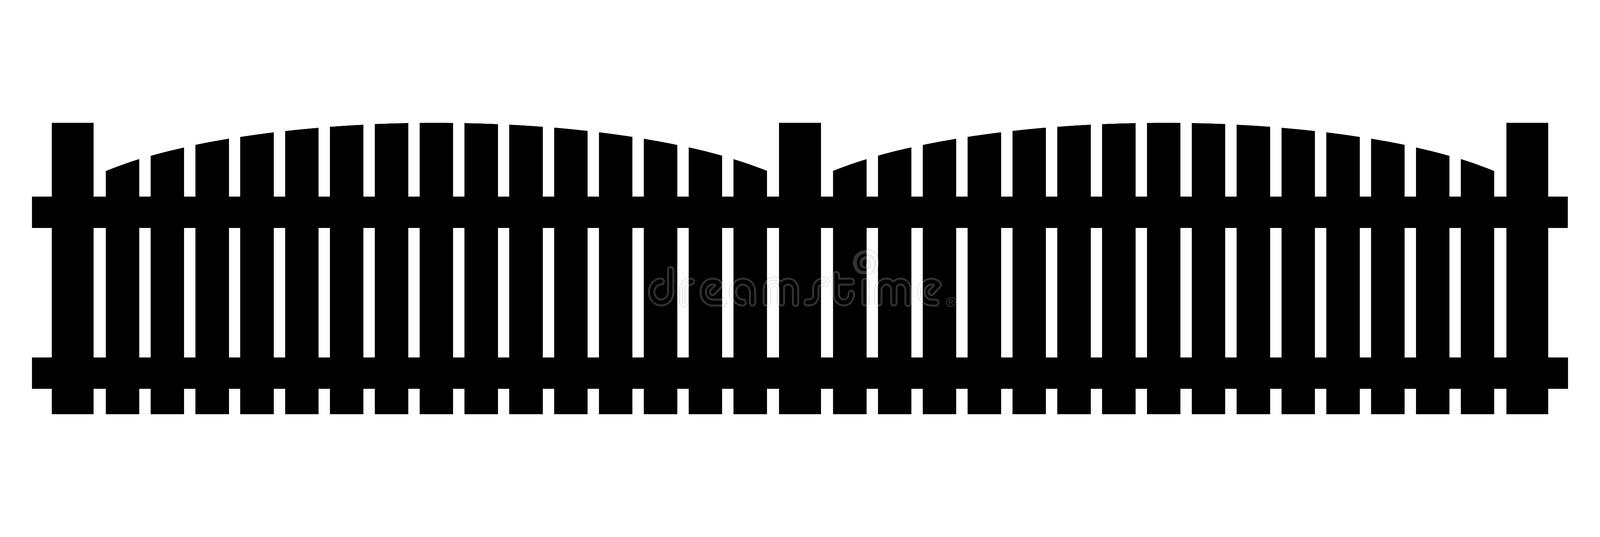 Fence silhouette clipart. Vector illustration isolated on white. Background royalty free illustration